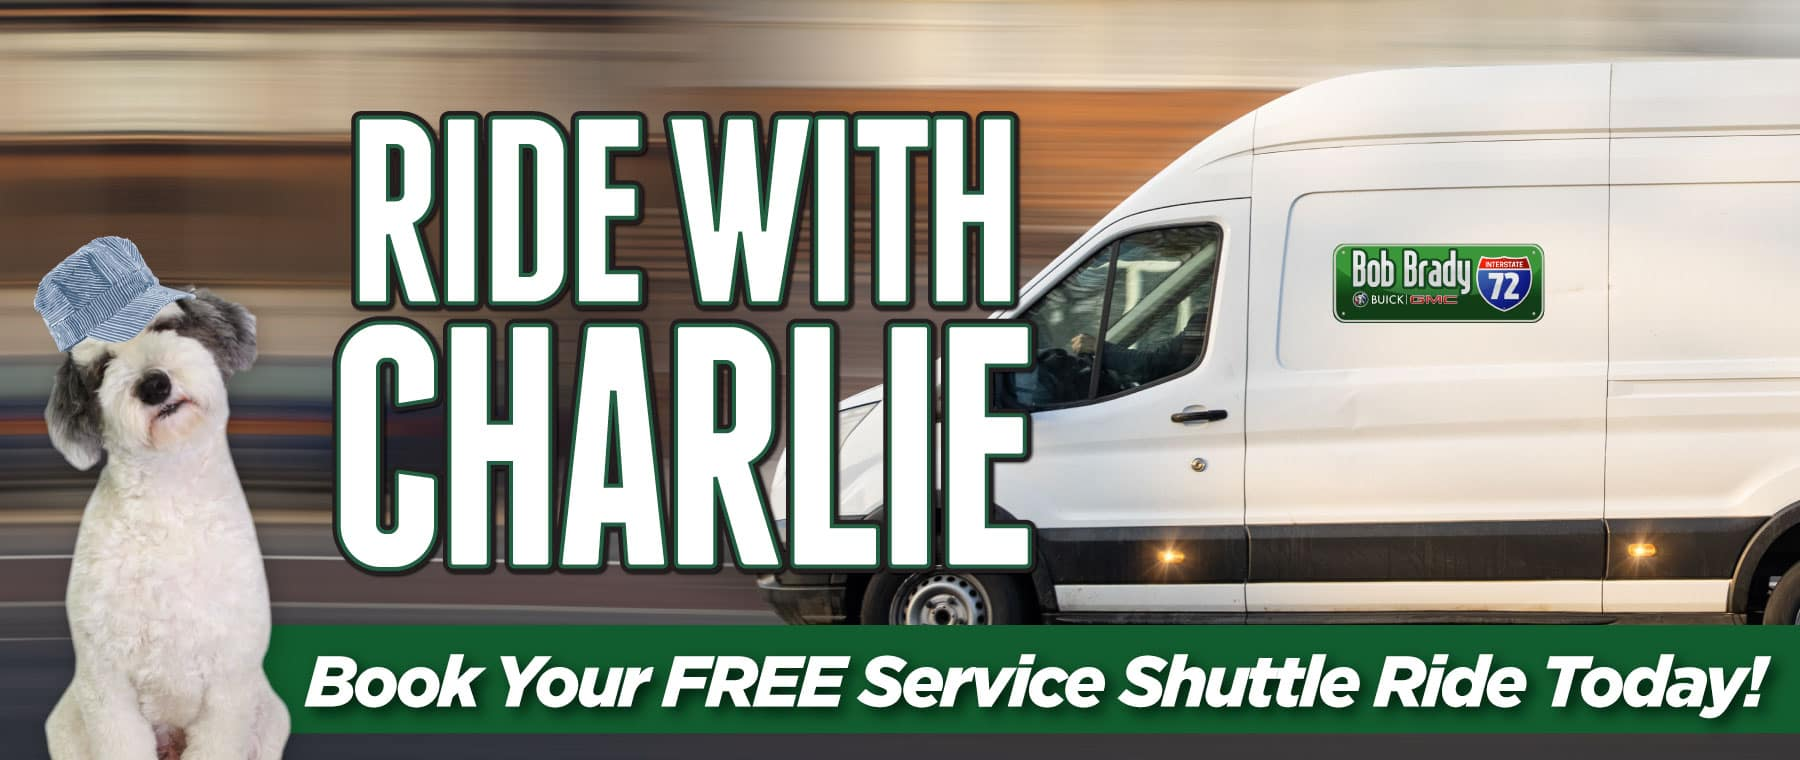 Ride with Charlie   Book your free service shuttle ride today